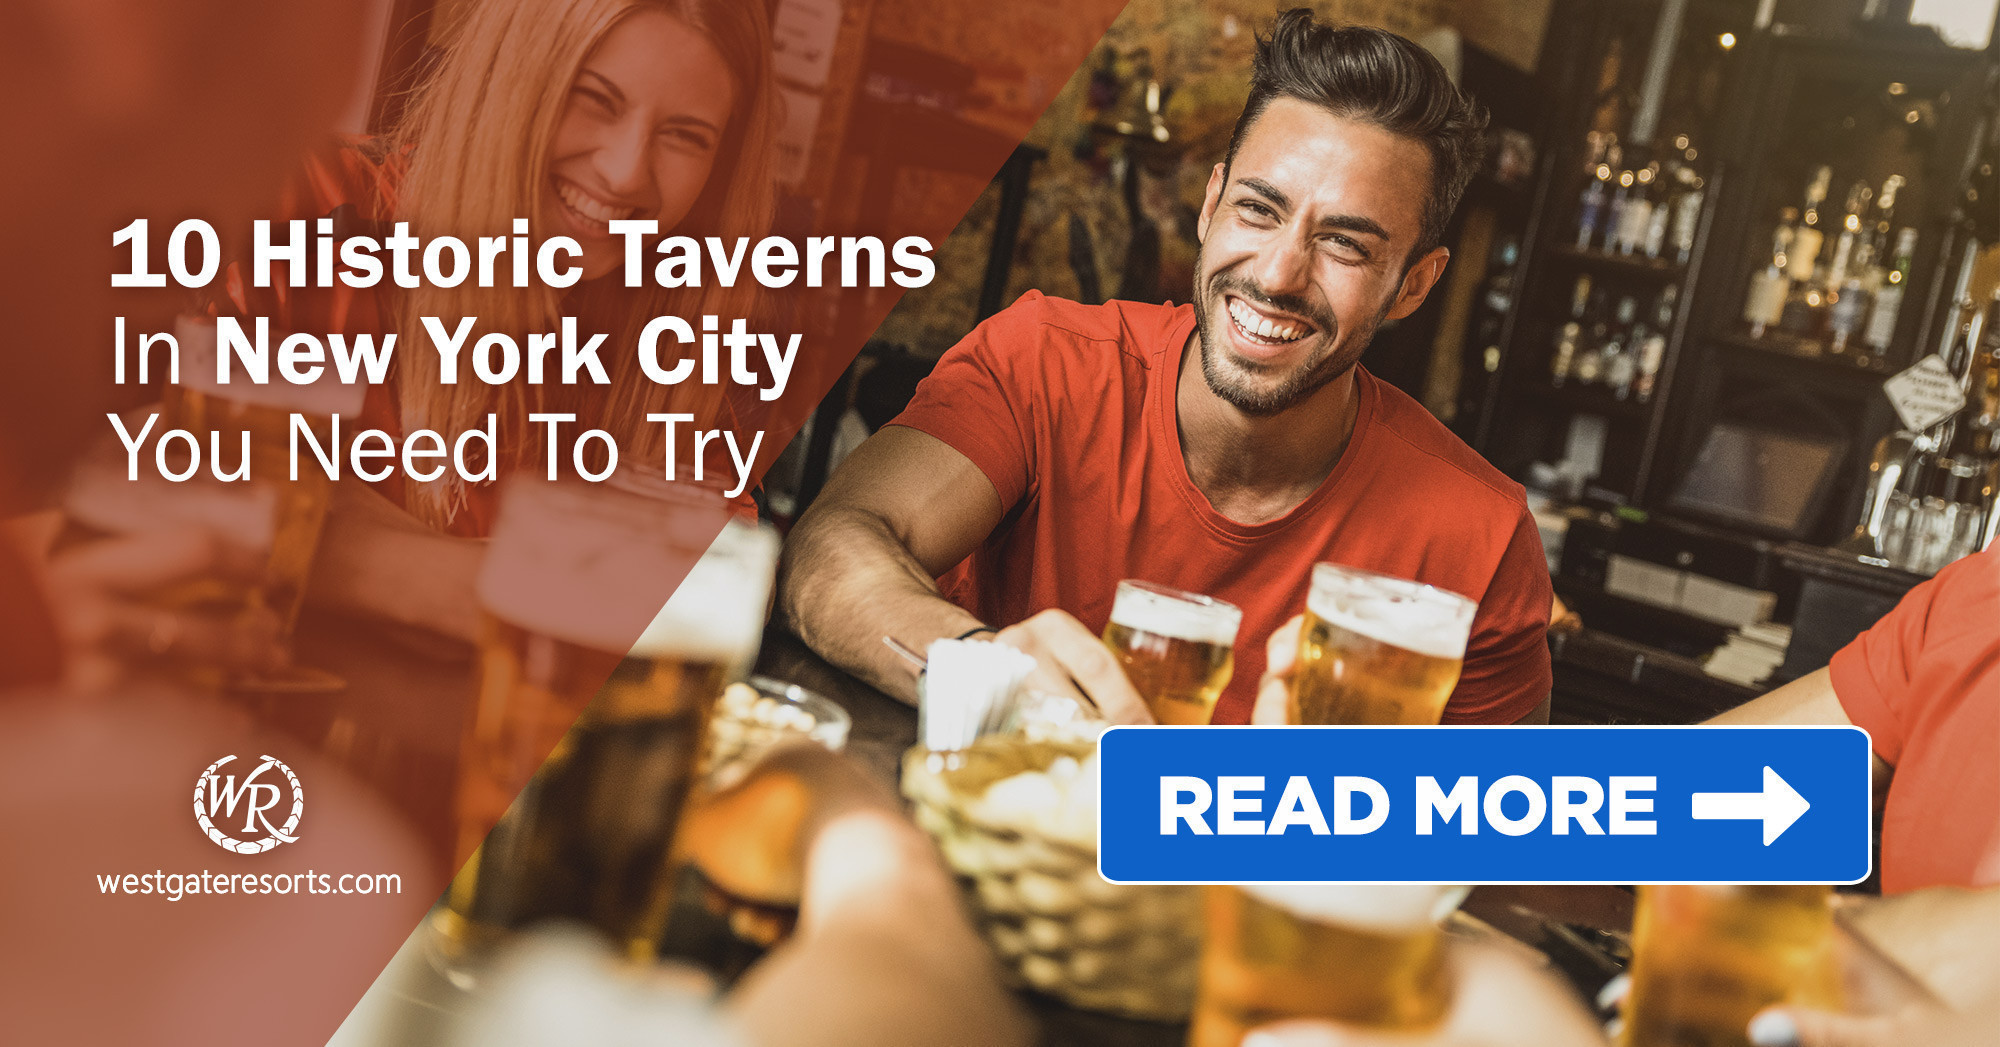 10 Historic Taverns In New York City You Need To Try | The Best Old NYC Taverns